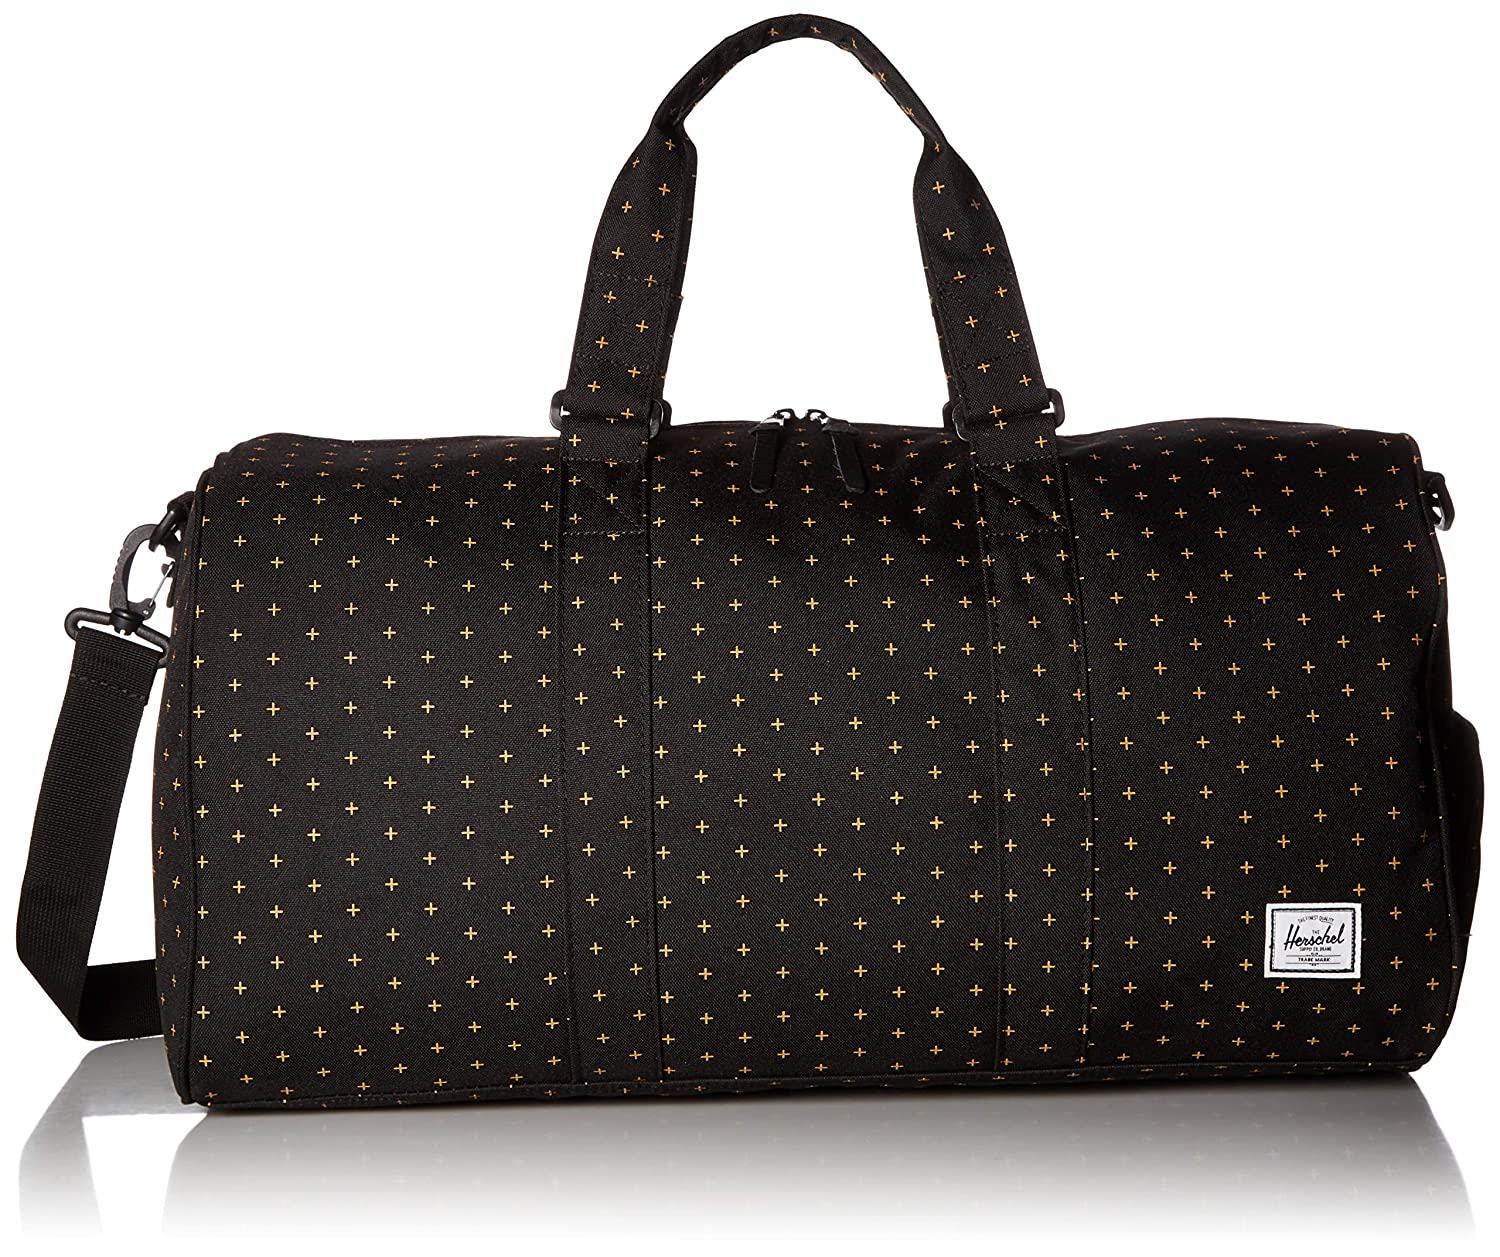 2ecafa667839 Herschel Novel Mid-Volume Duffel Bag, Black Gridlock Gold, One Size